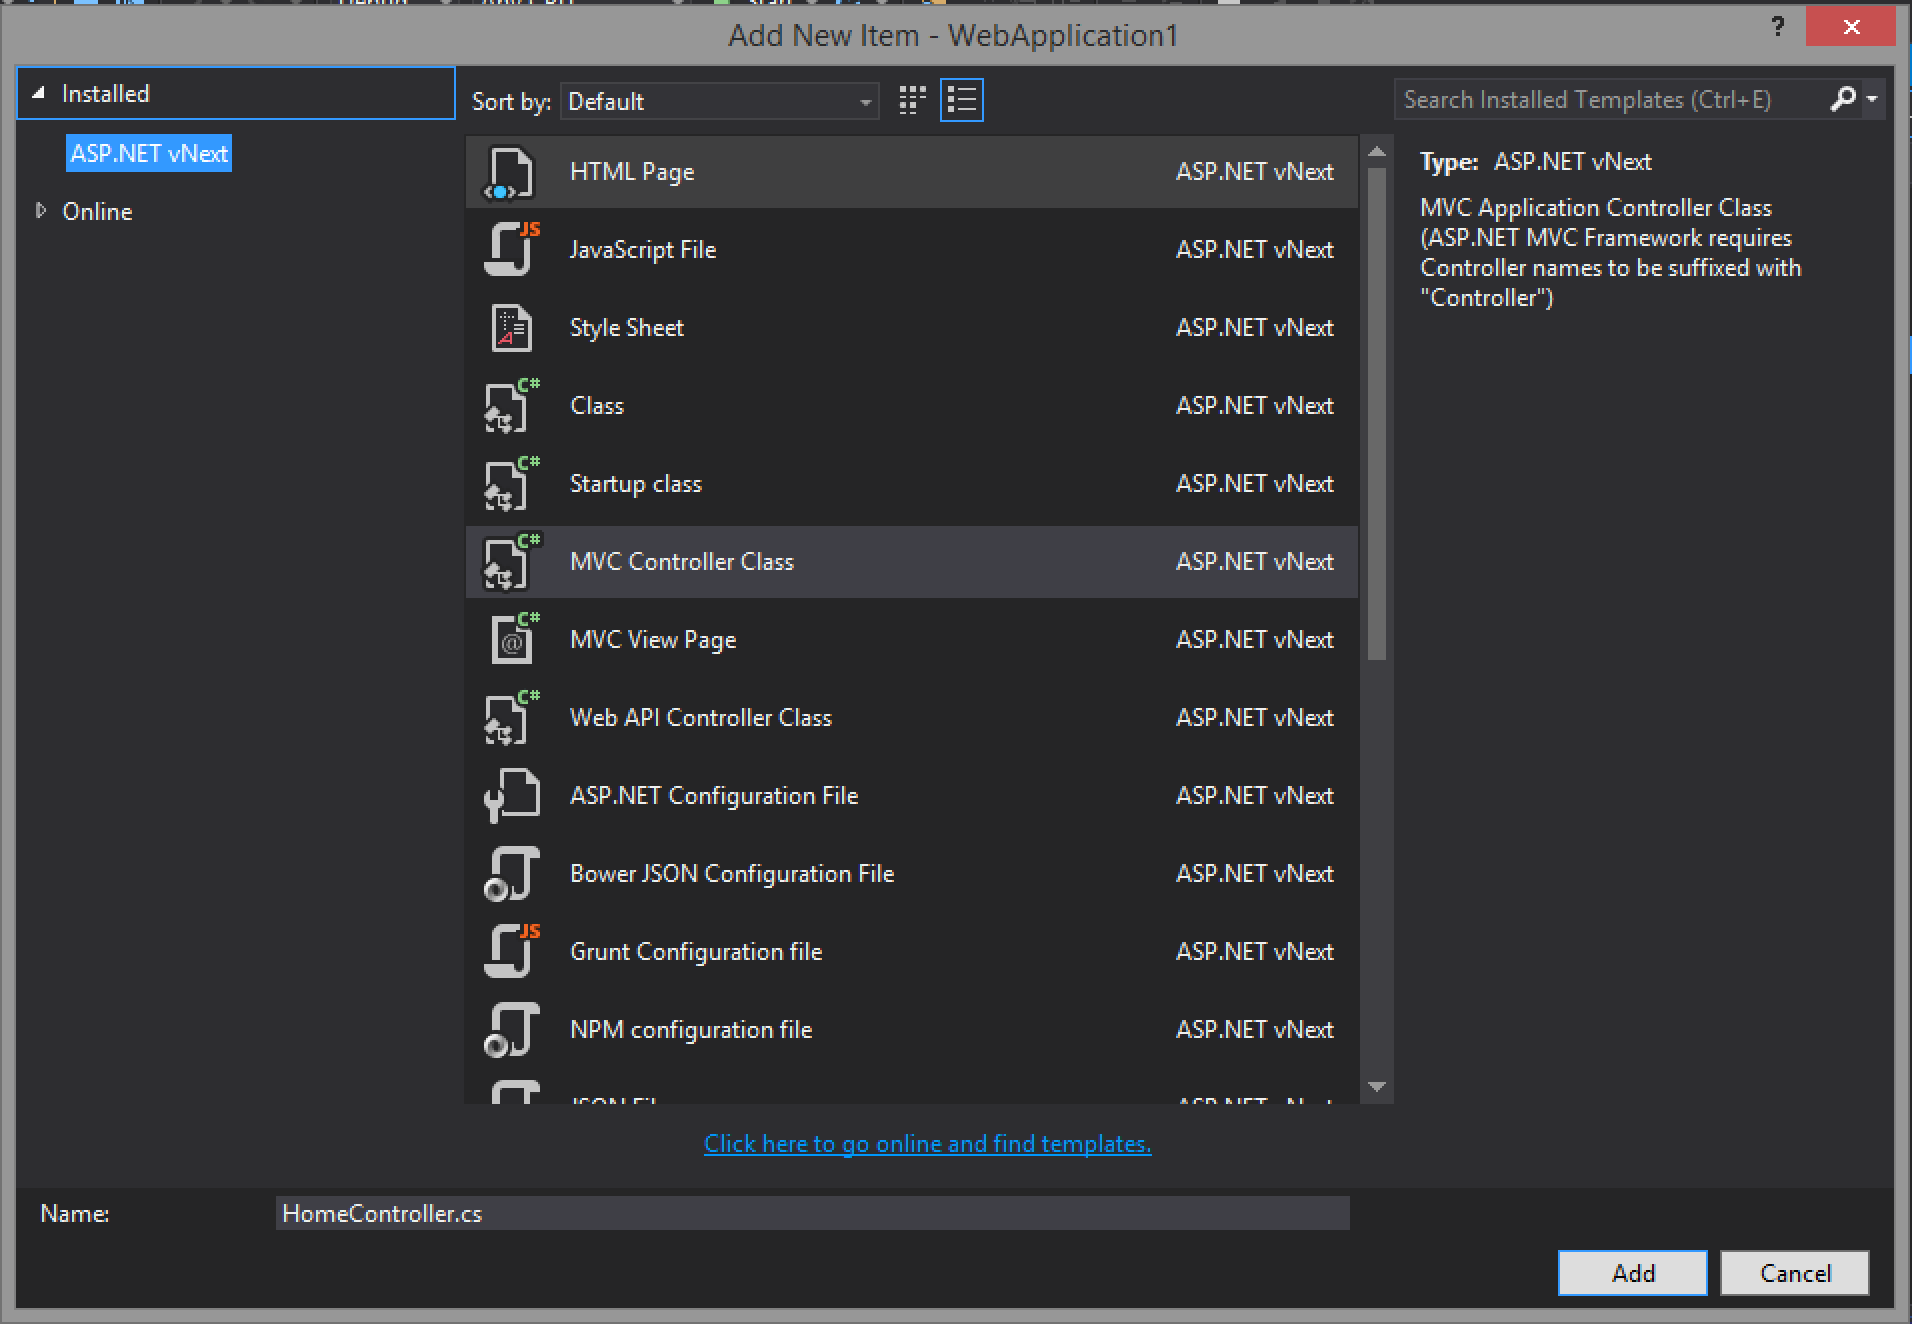 Visual Studio Add New Item